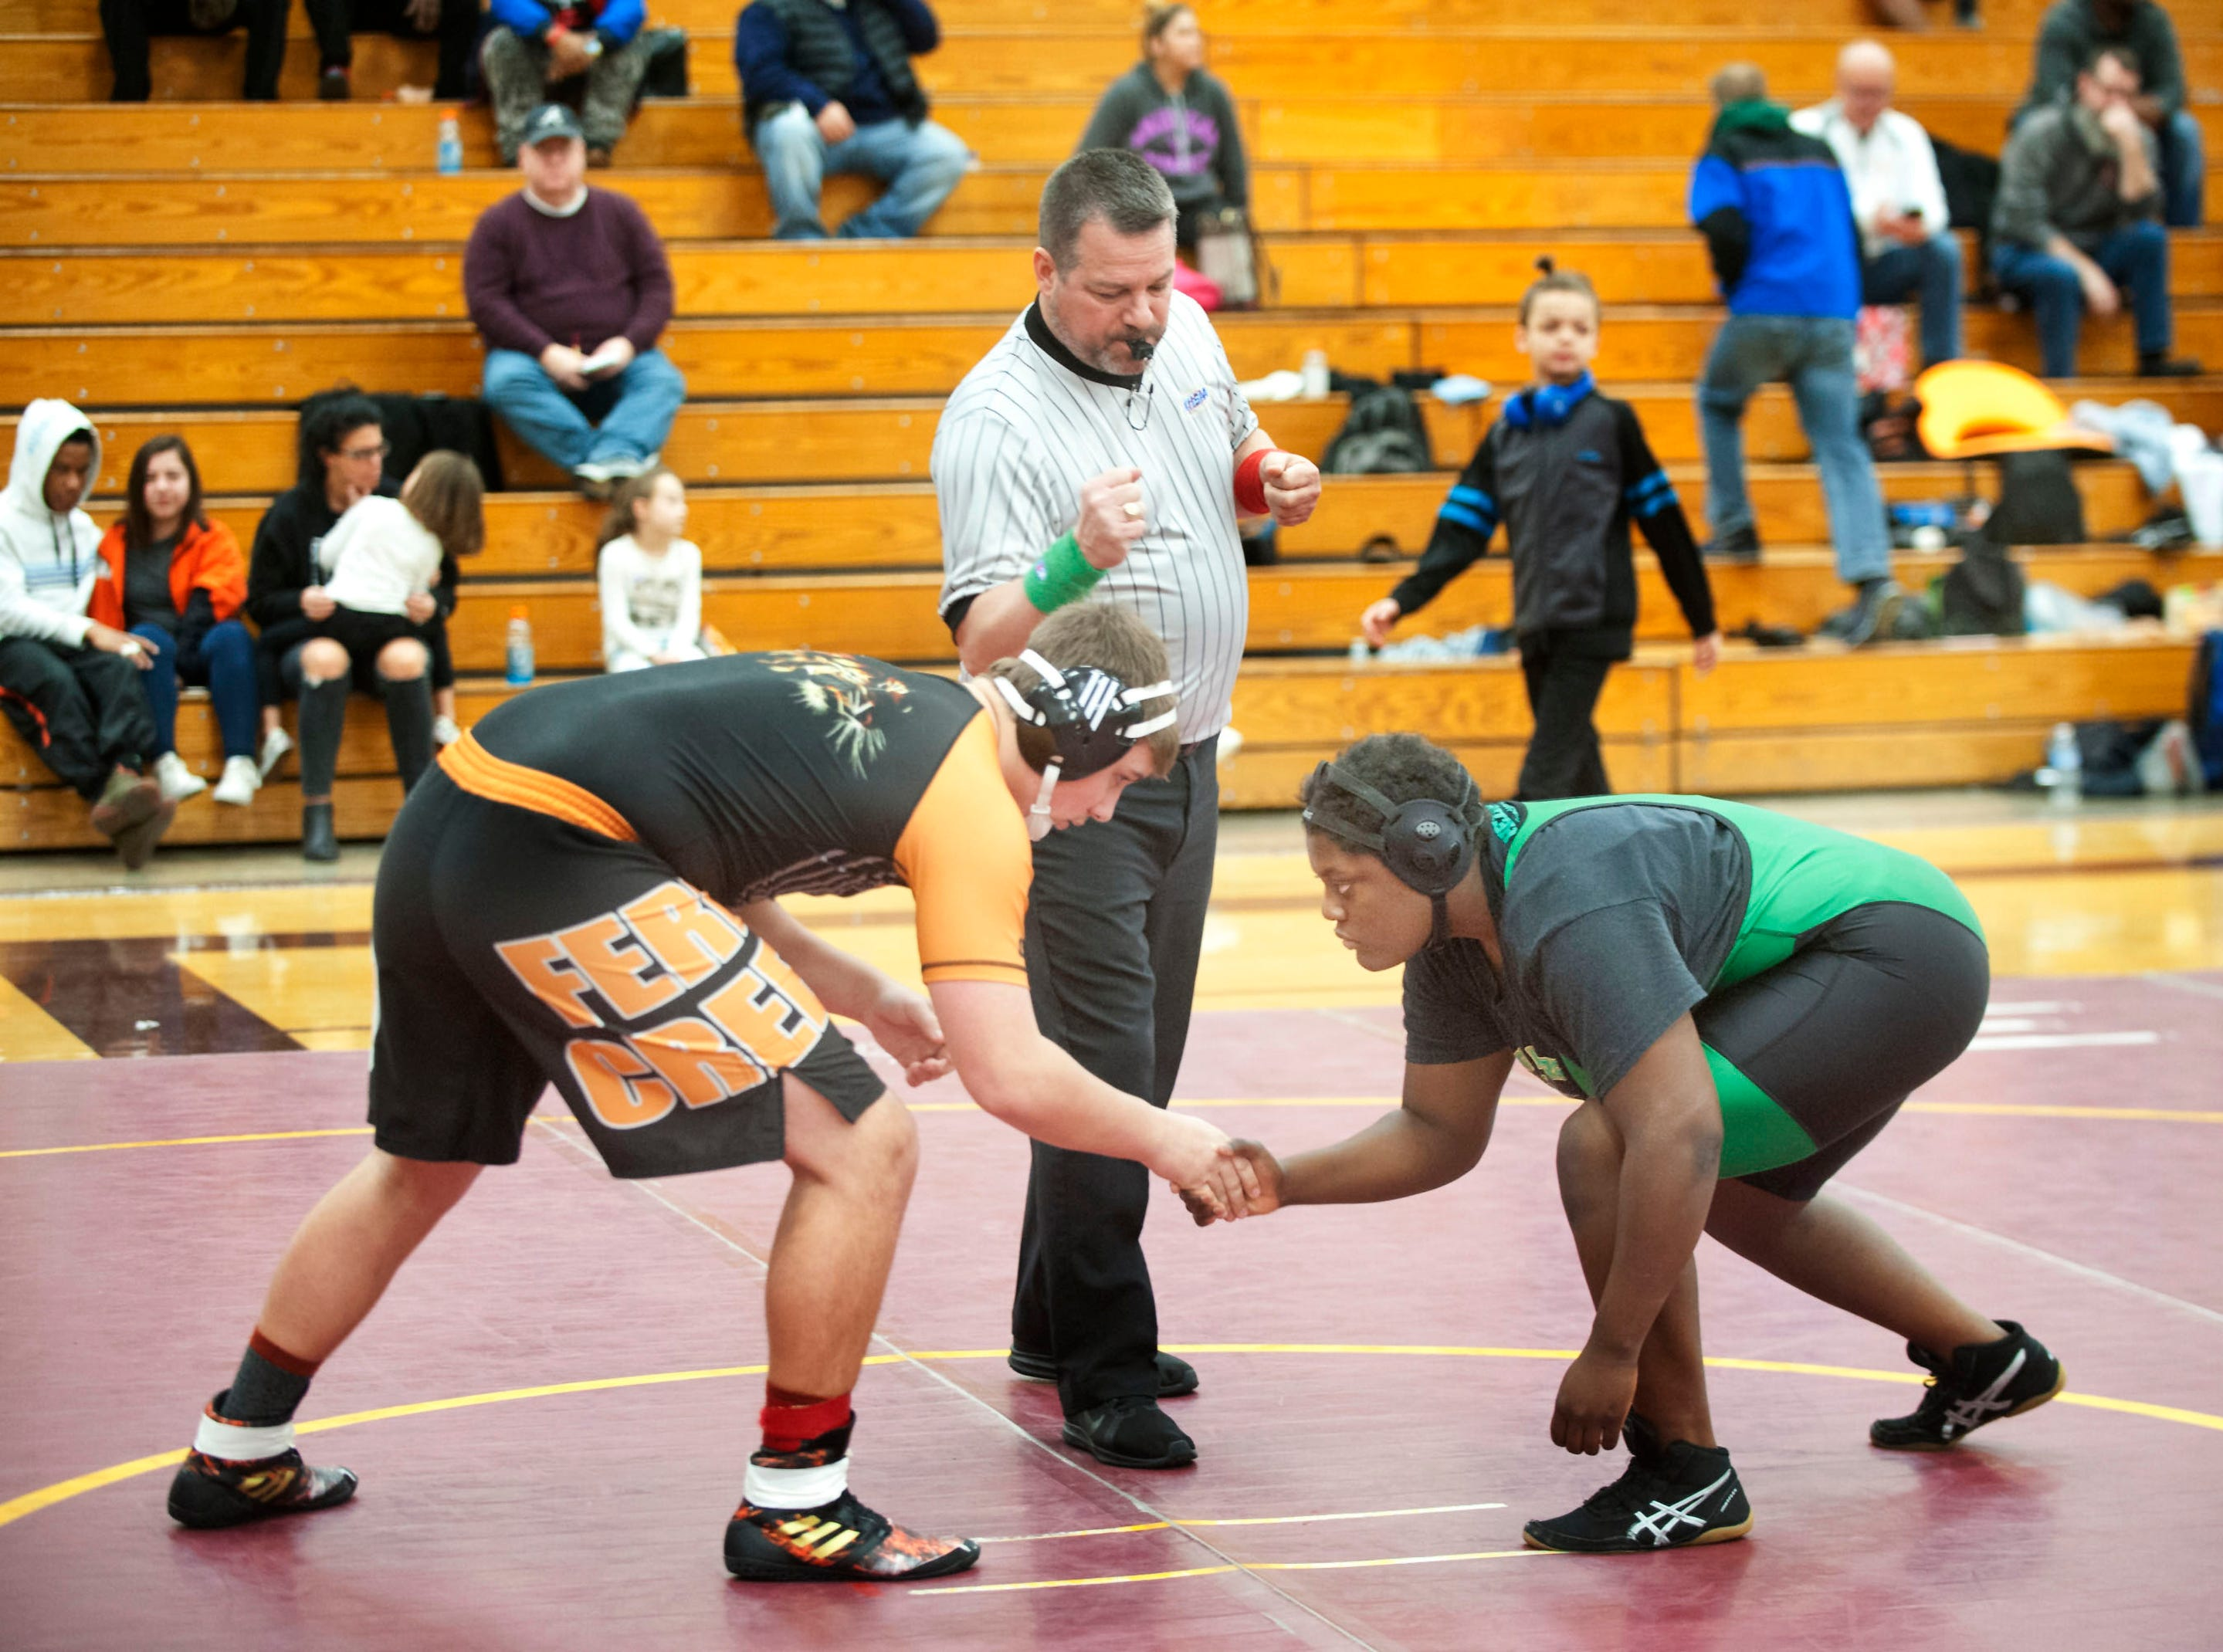 Fern Creek's Alex Martin, left, shakes hands with Lokey at the beginning of their 220 lb. class contest.09 February 2019